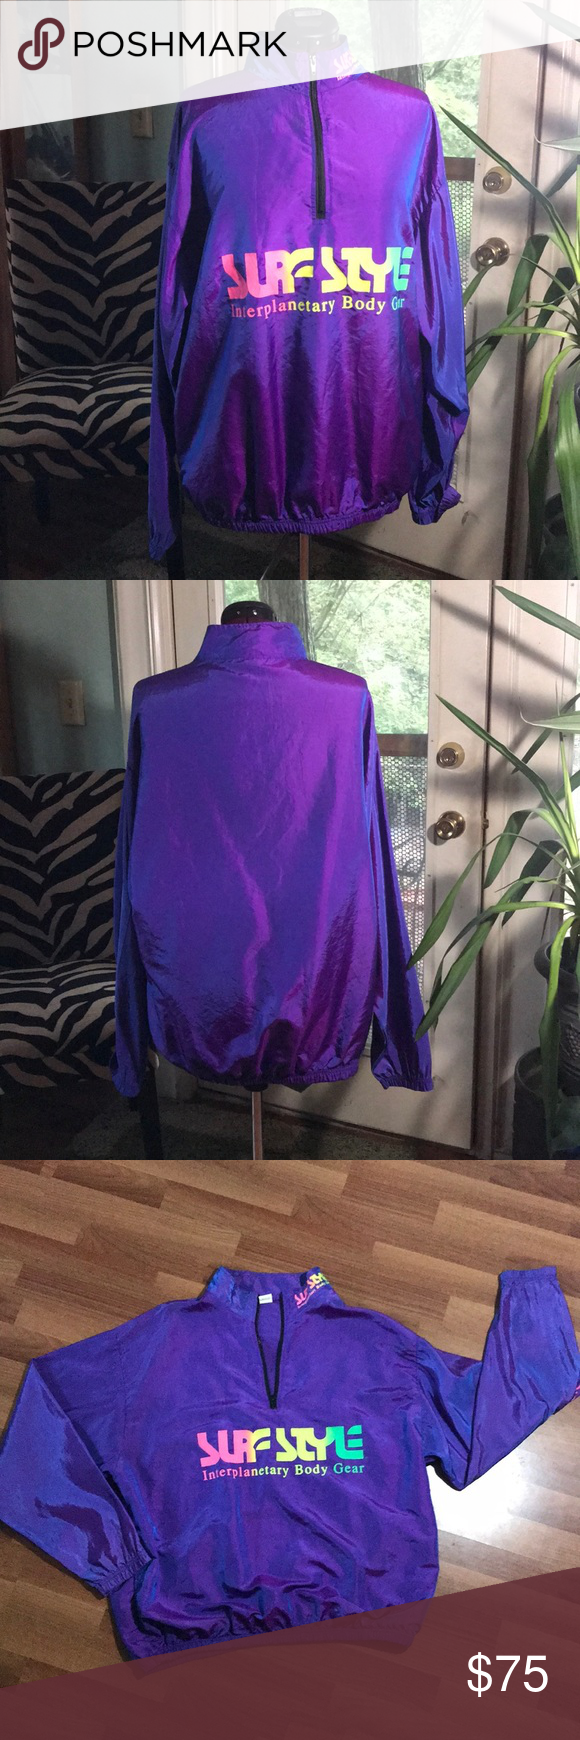 VINTAGE 1980s SURF STYLE WINDBREAKER PURPLE Vintage